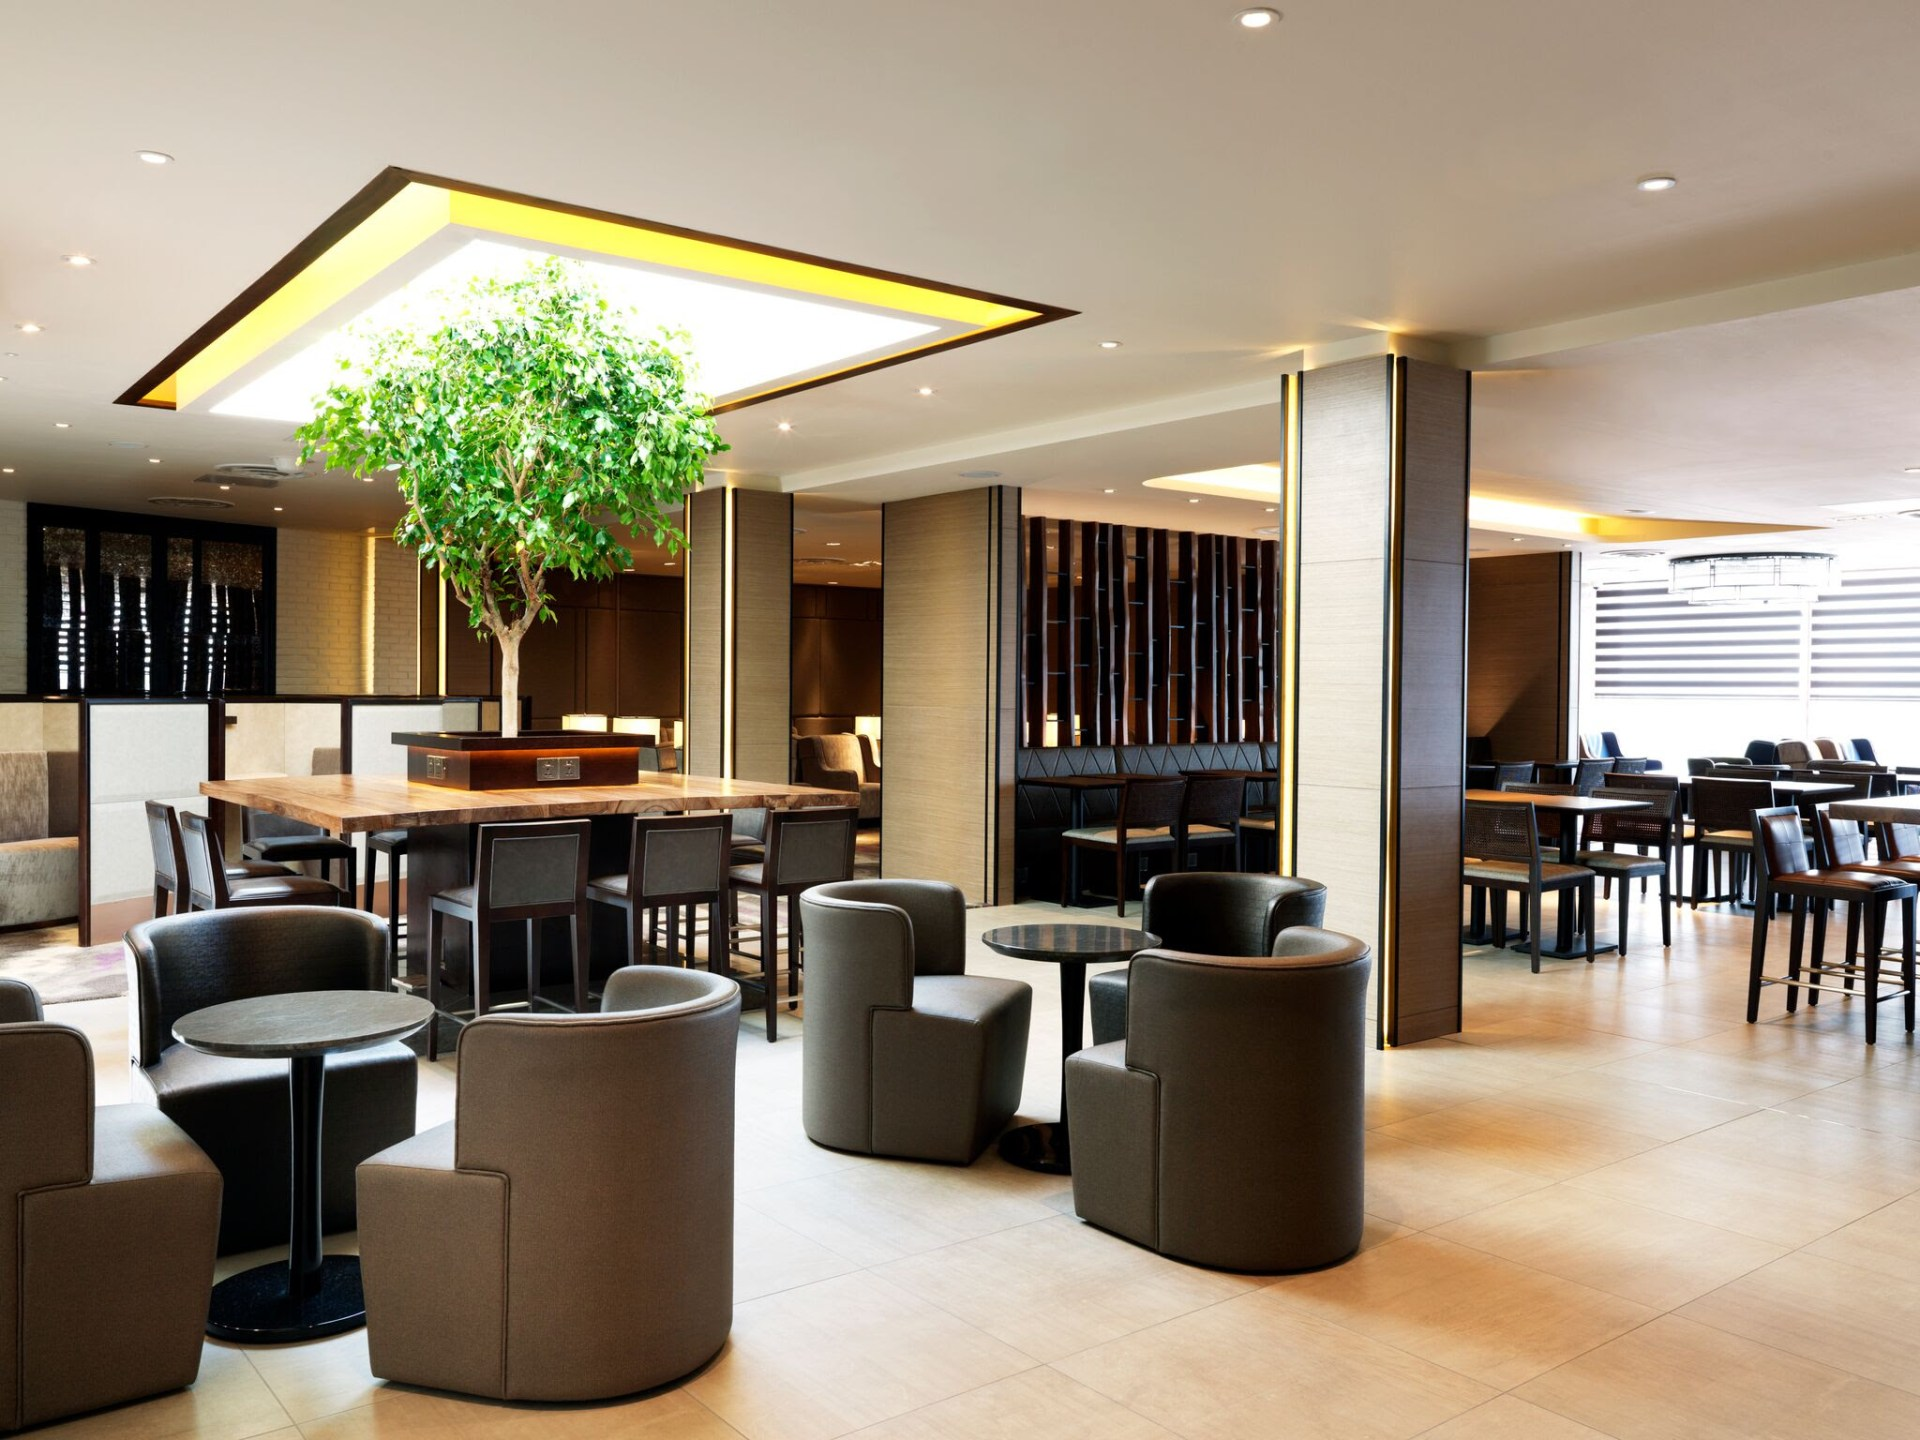 Summer Holidays: top tips and perks when choosing an airport lounge